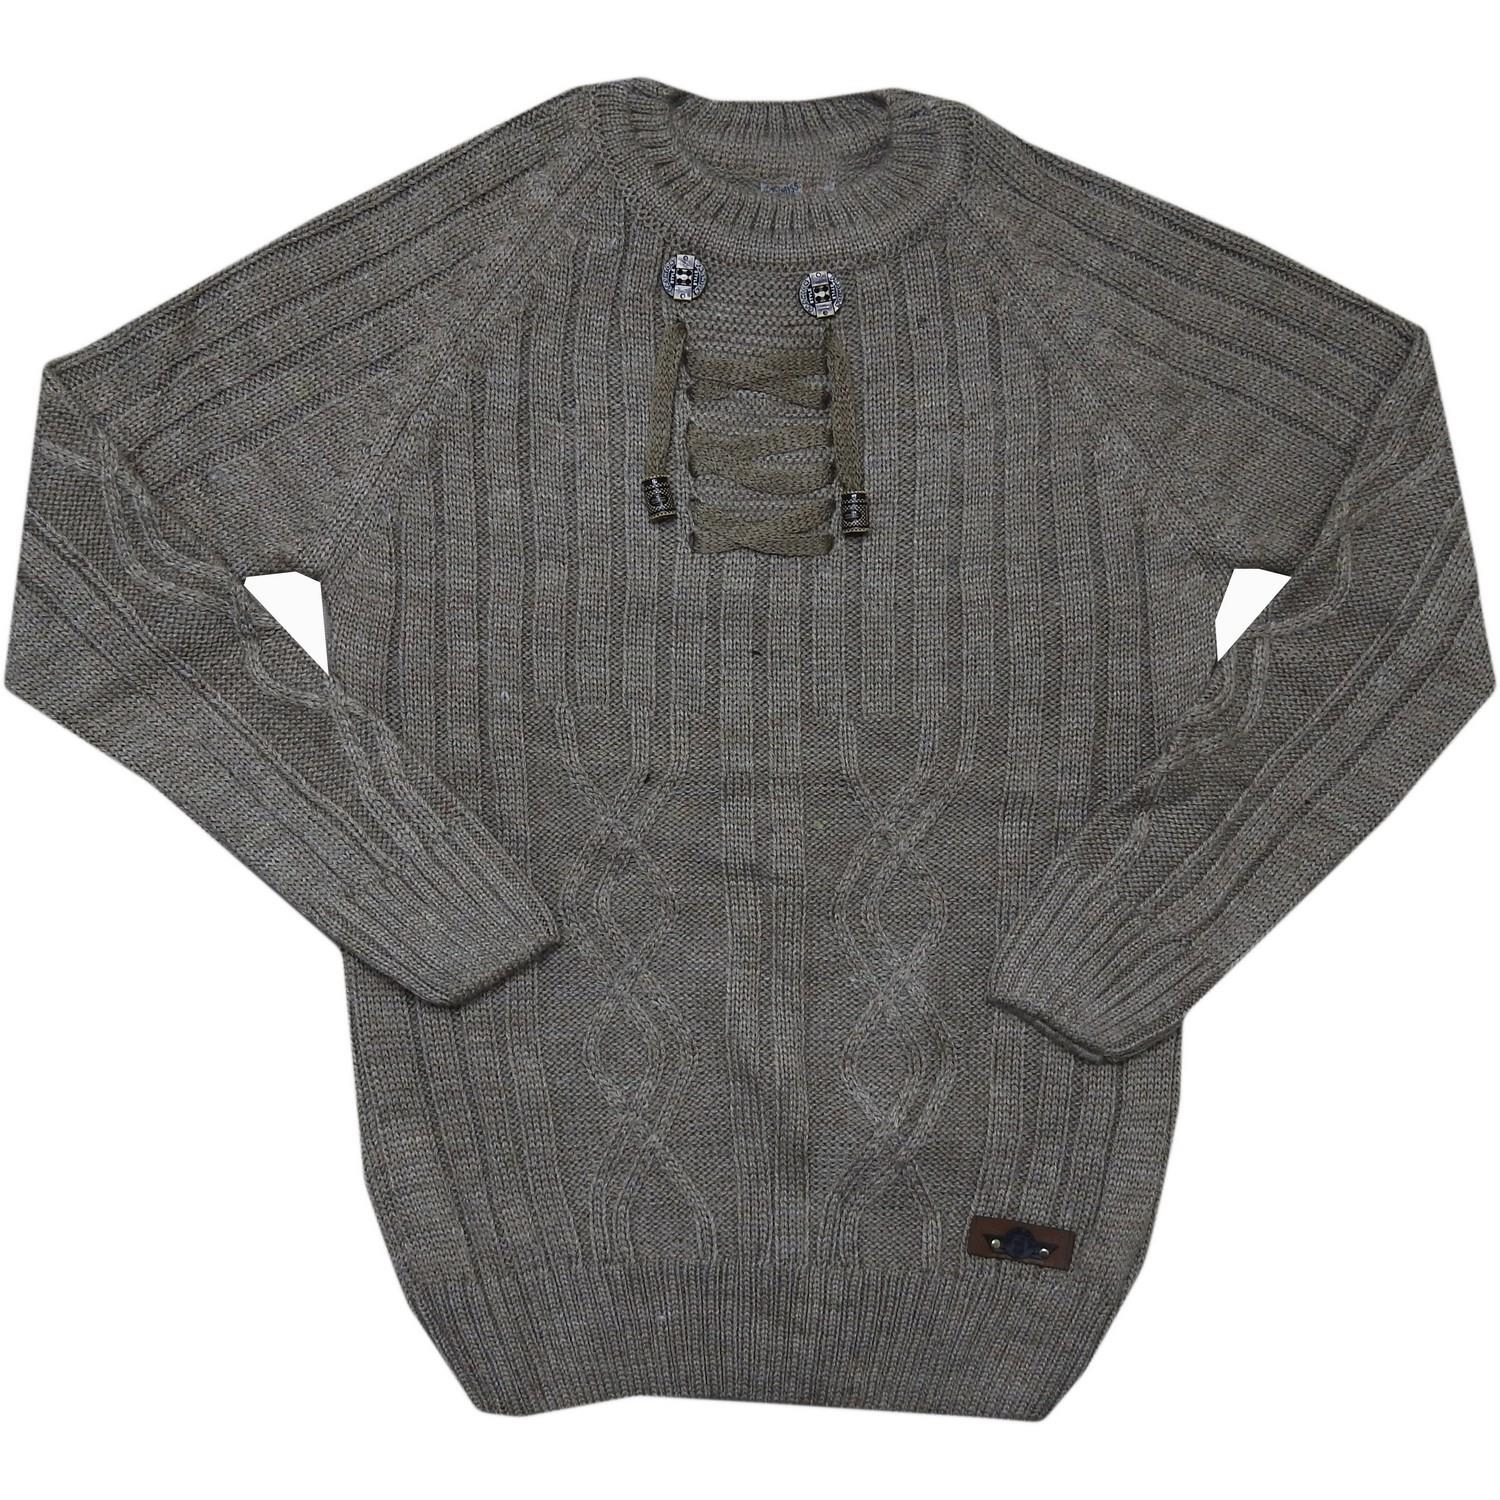 302 wholesale kid sweater for 4-6-8 years old boys.